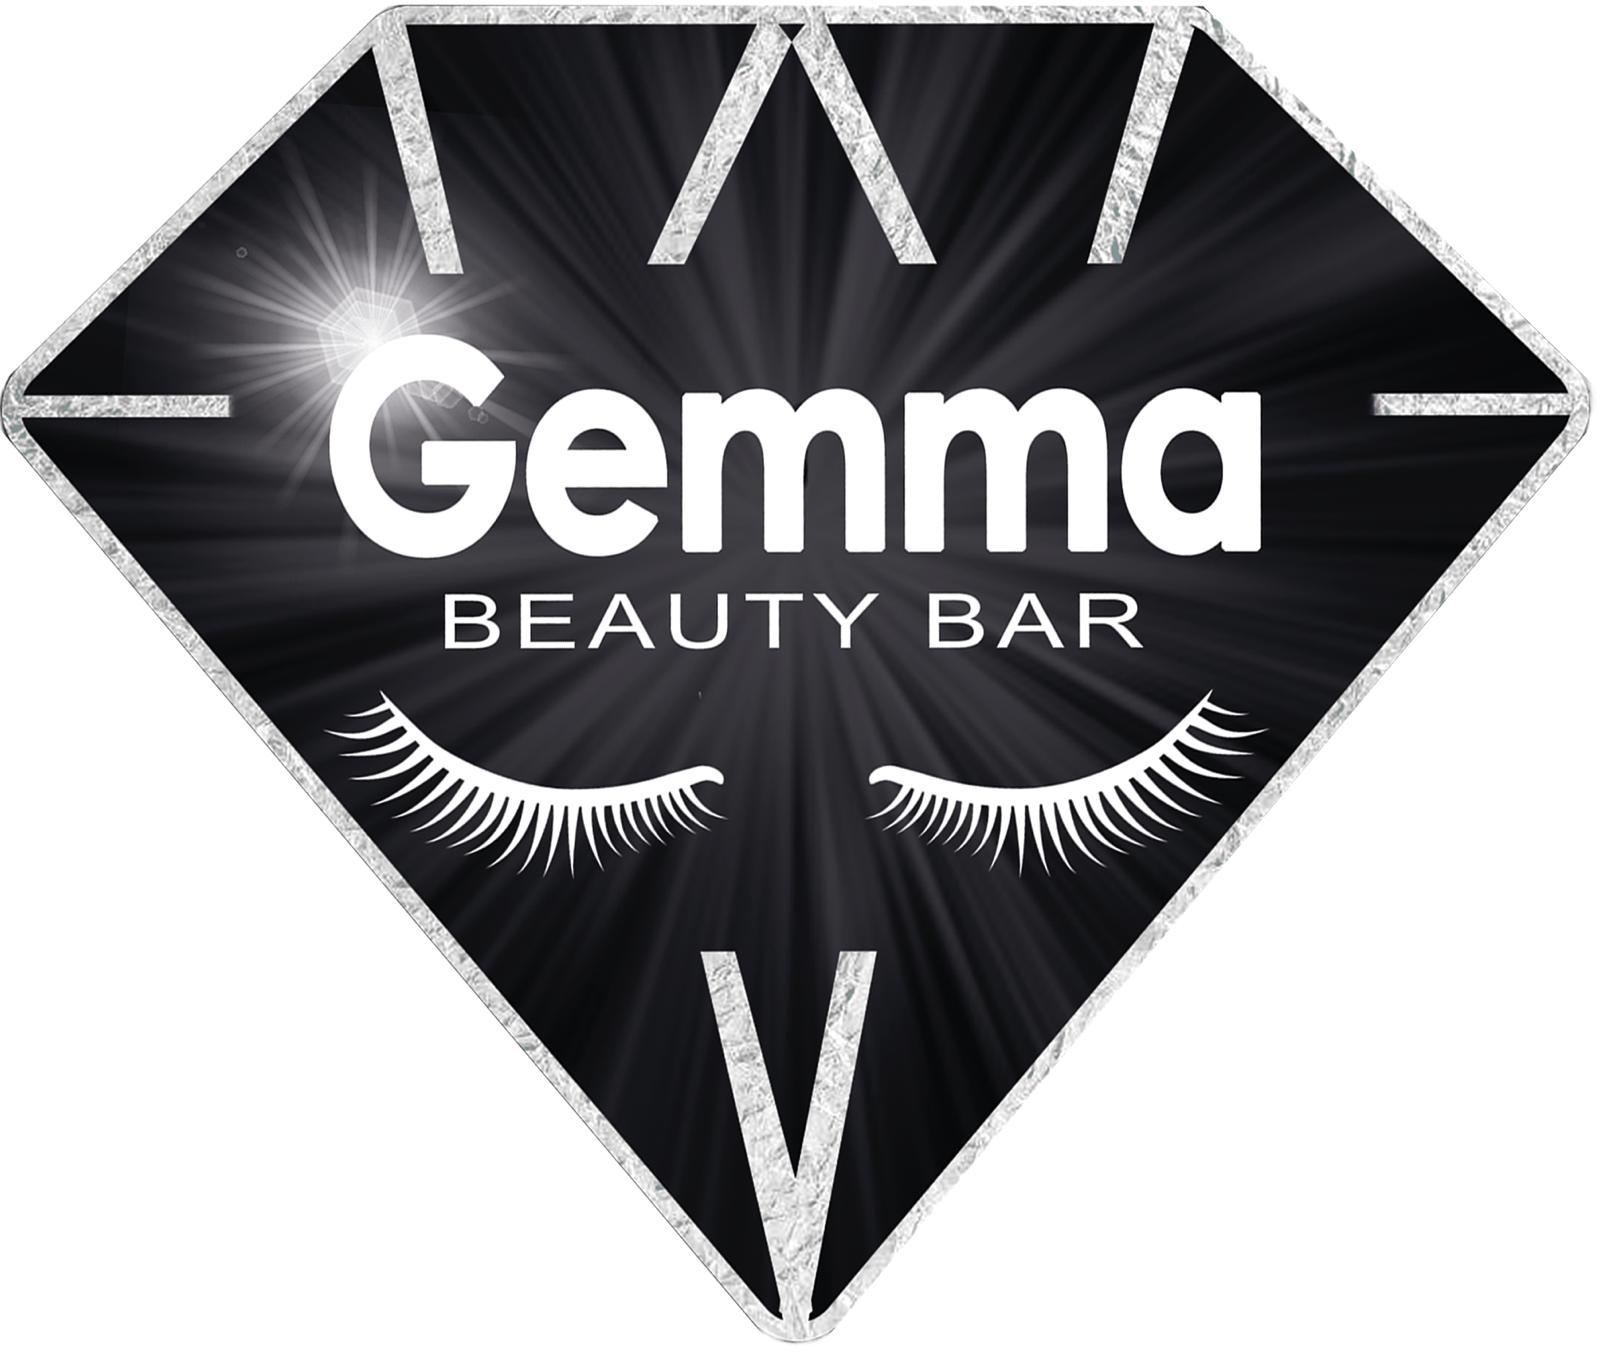 Gemma Beauty Bar Shop